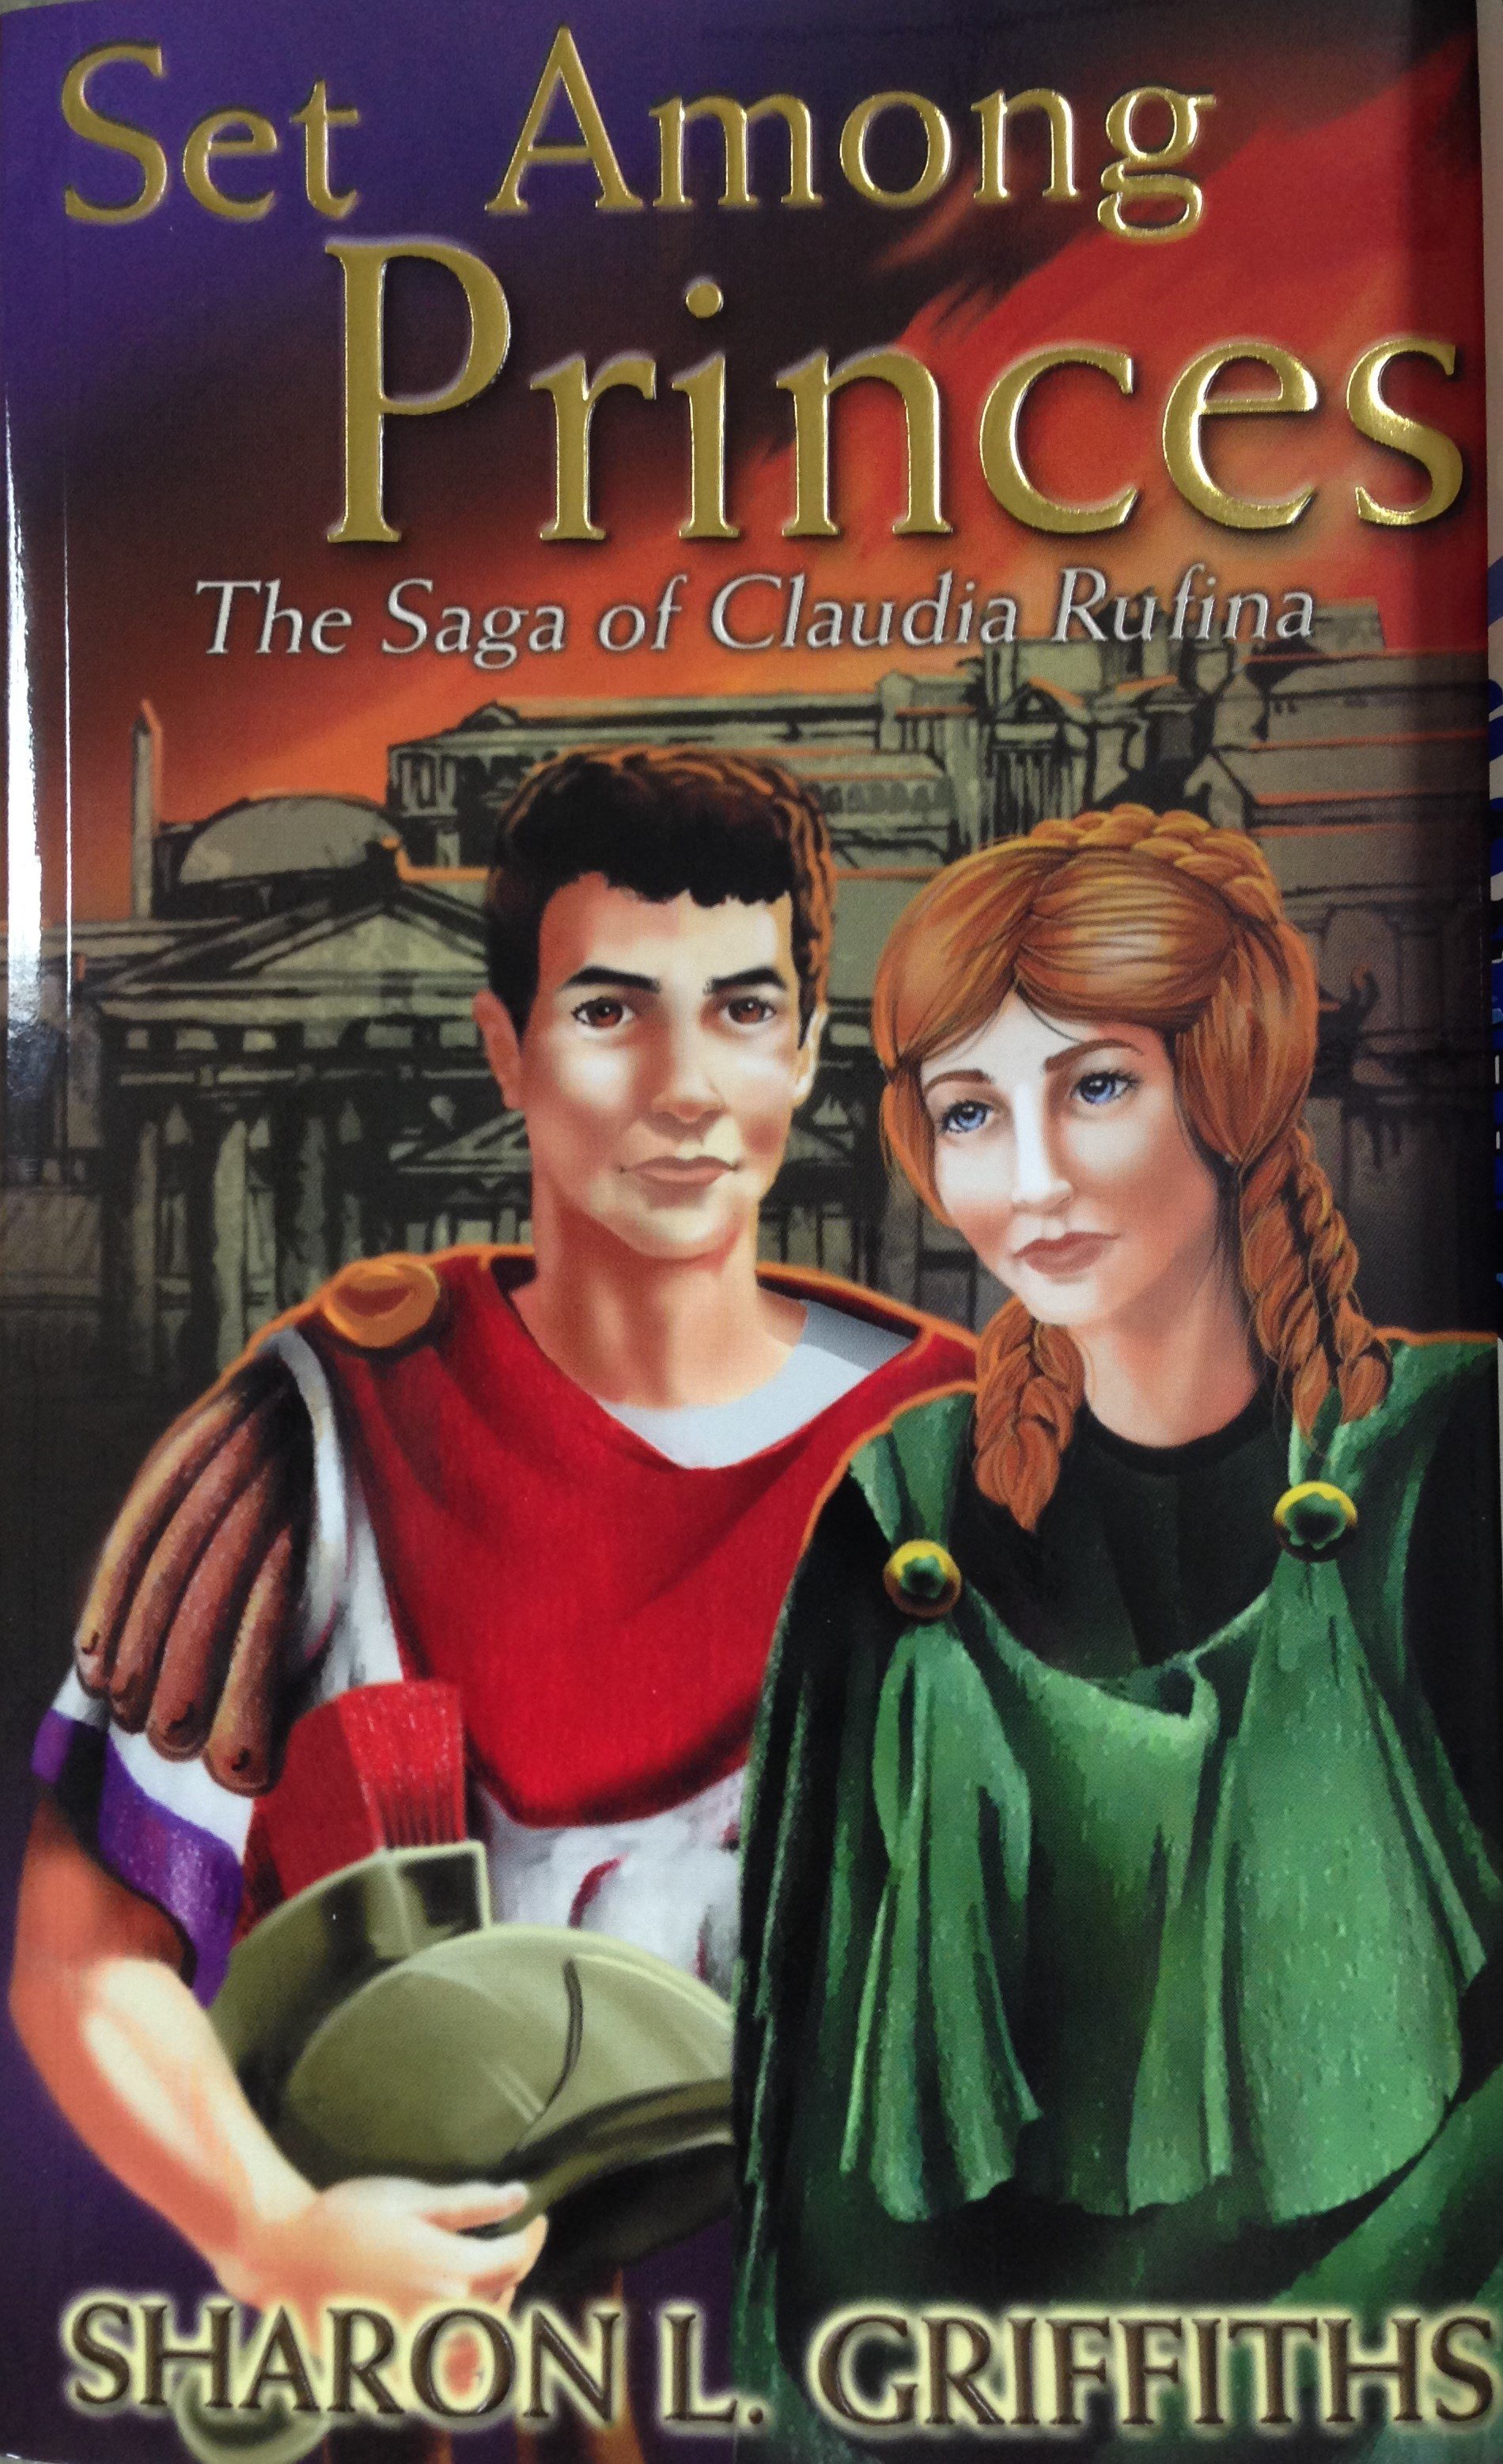 Set Among Princes:  The Saga of Claudia Rufina by Sharon L. Griffiths 00107